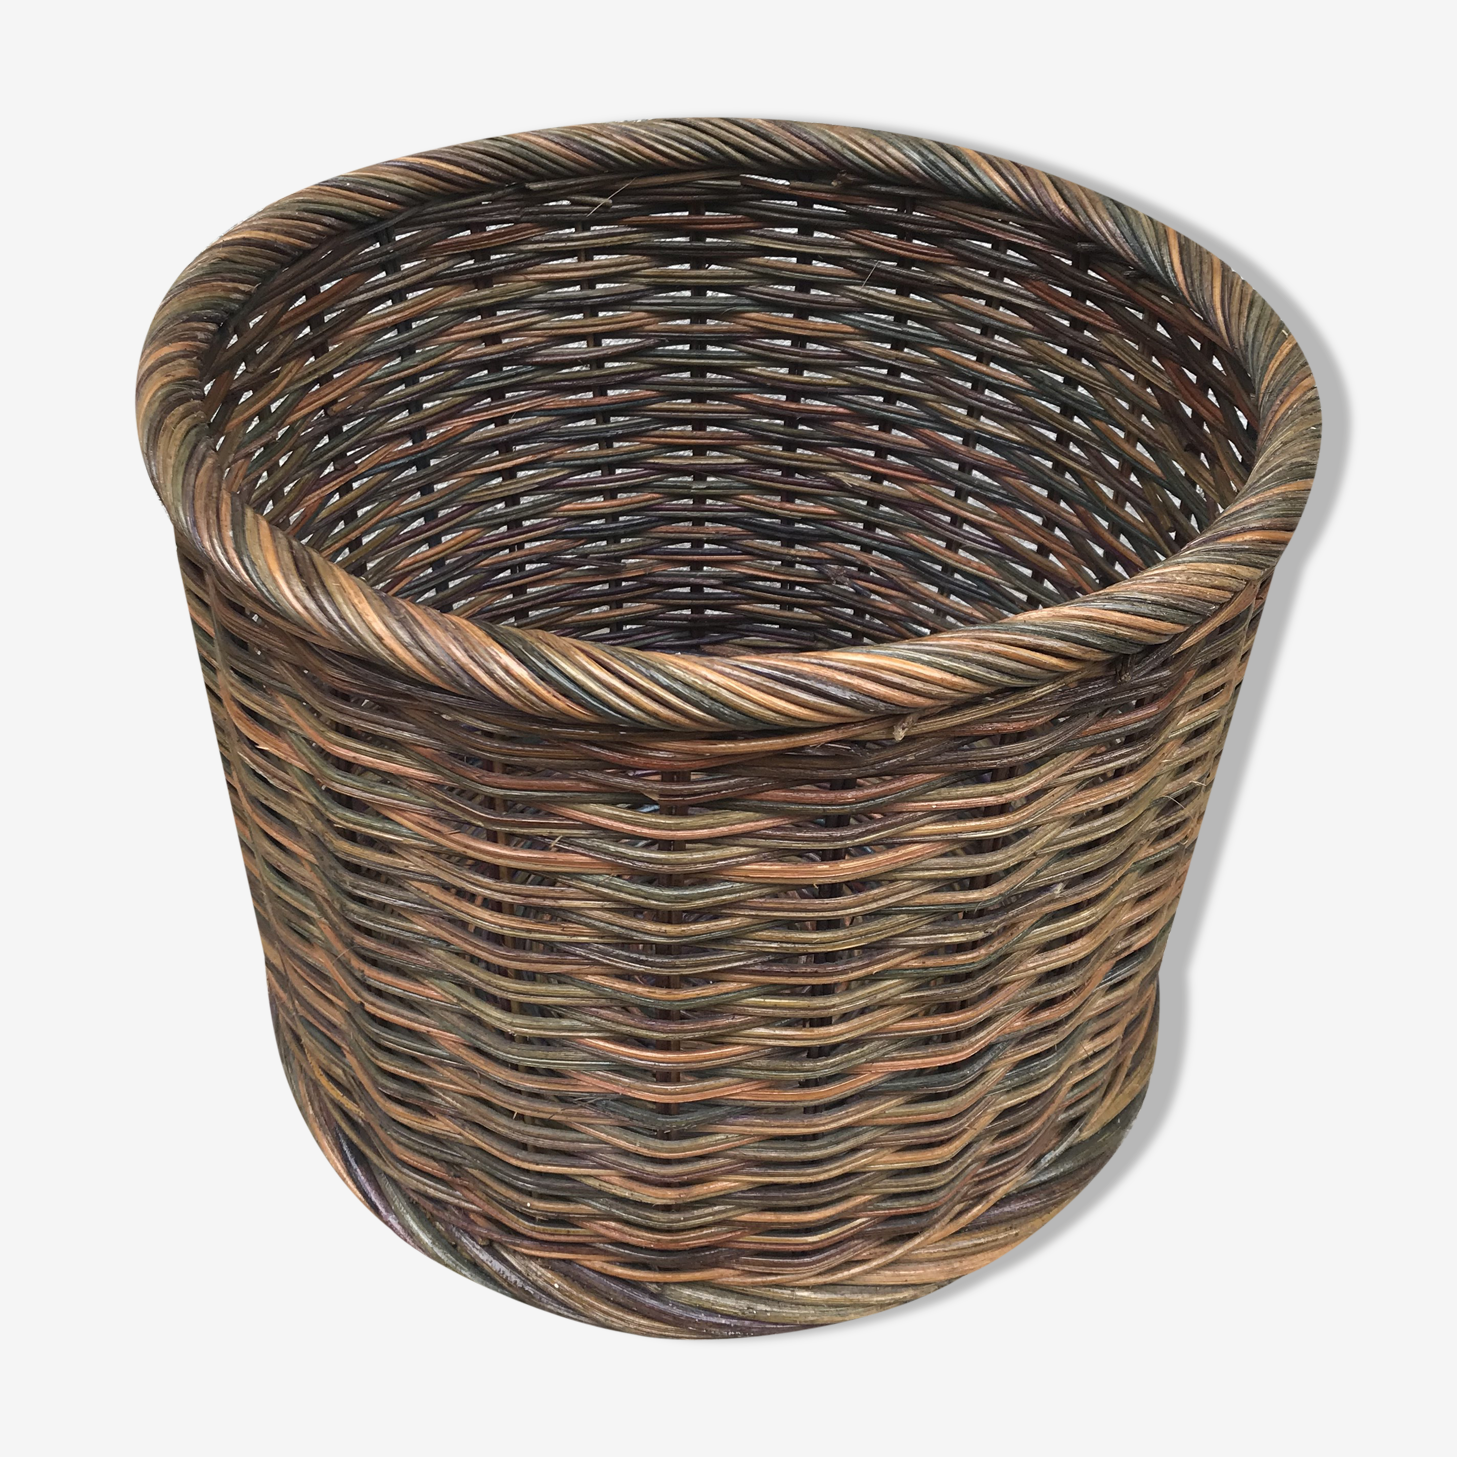 Old basket of the 60s in braided rattan